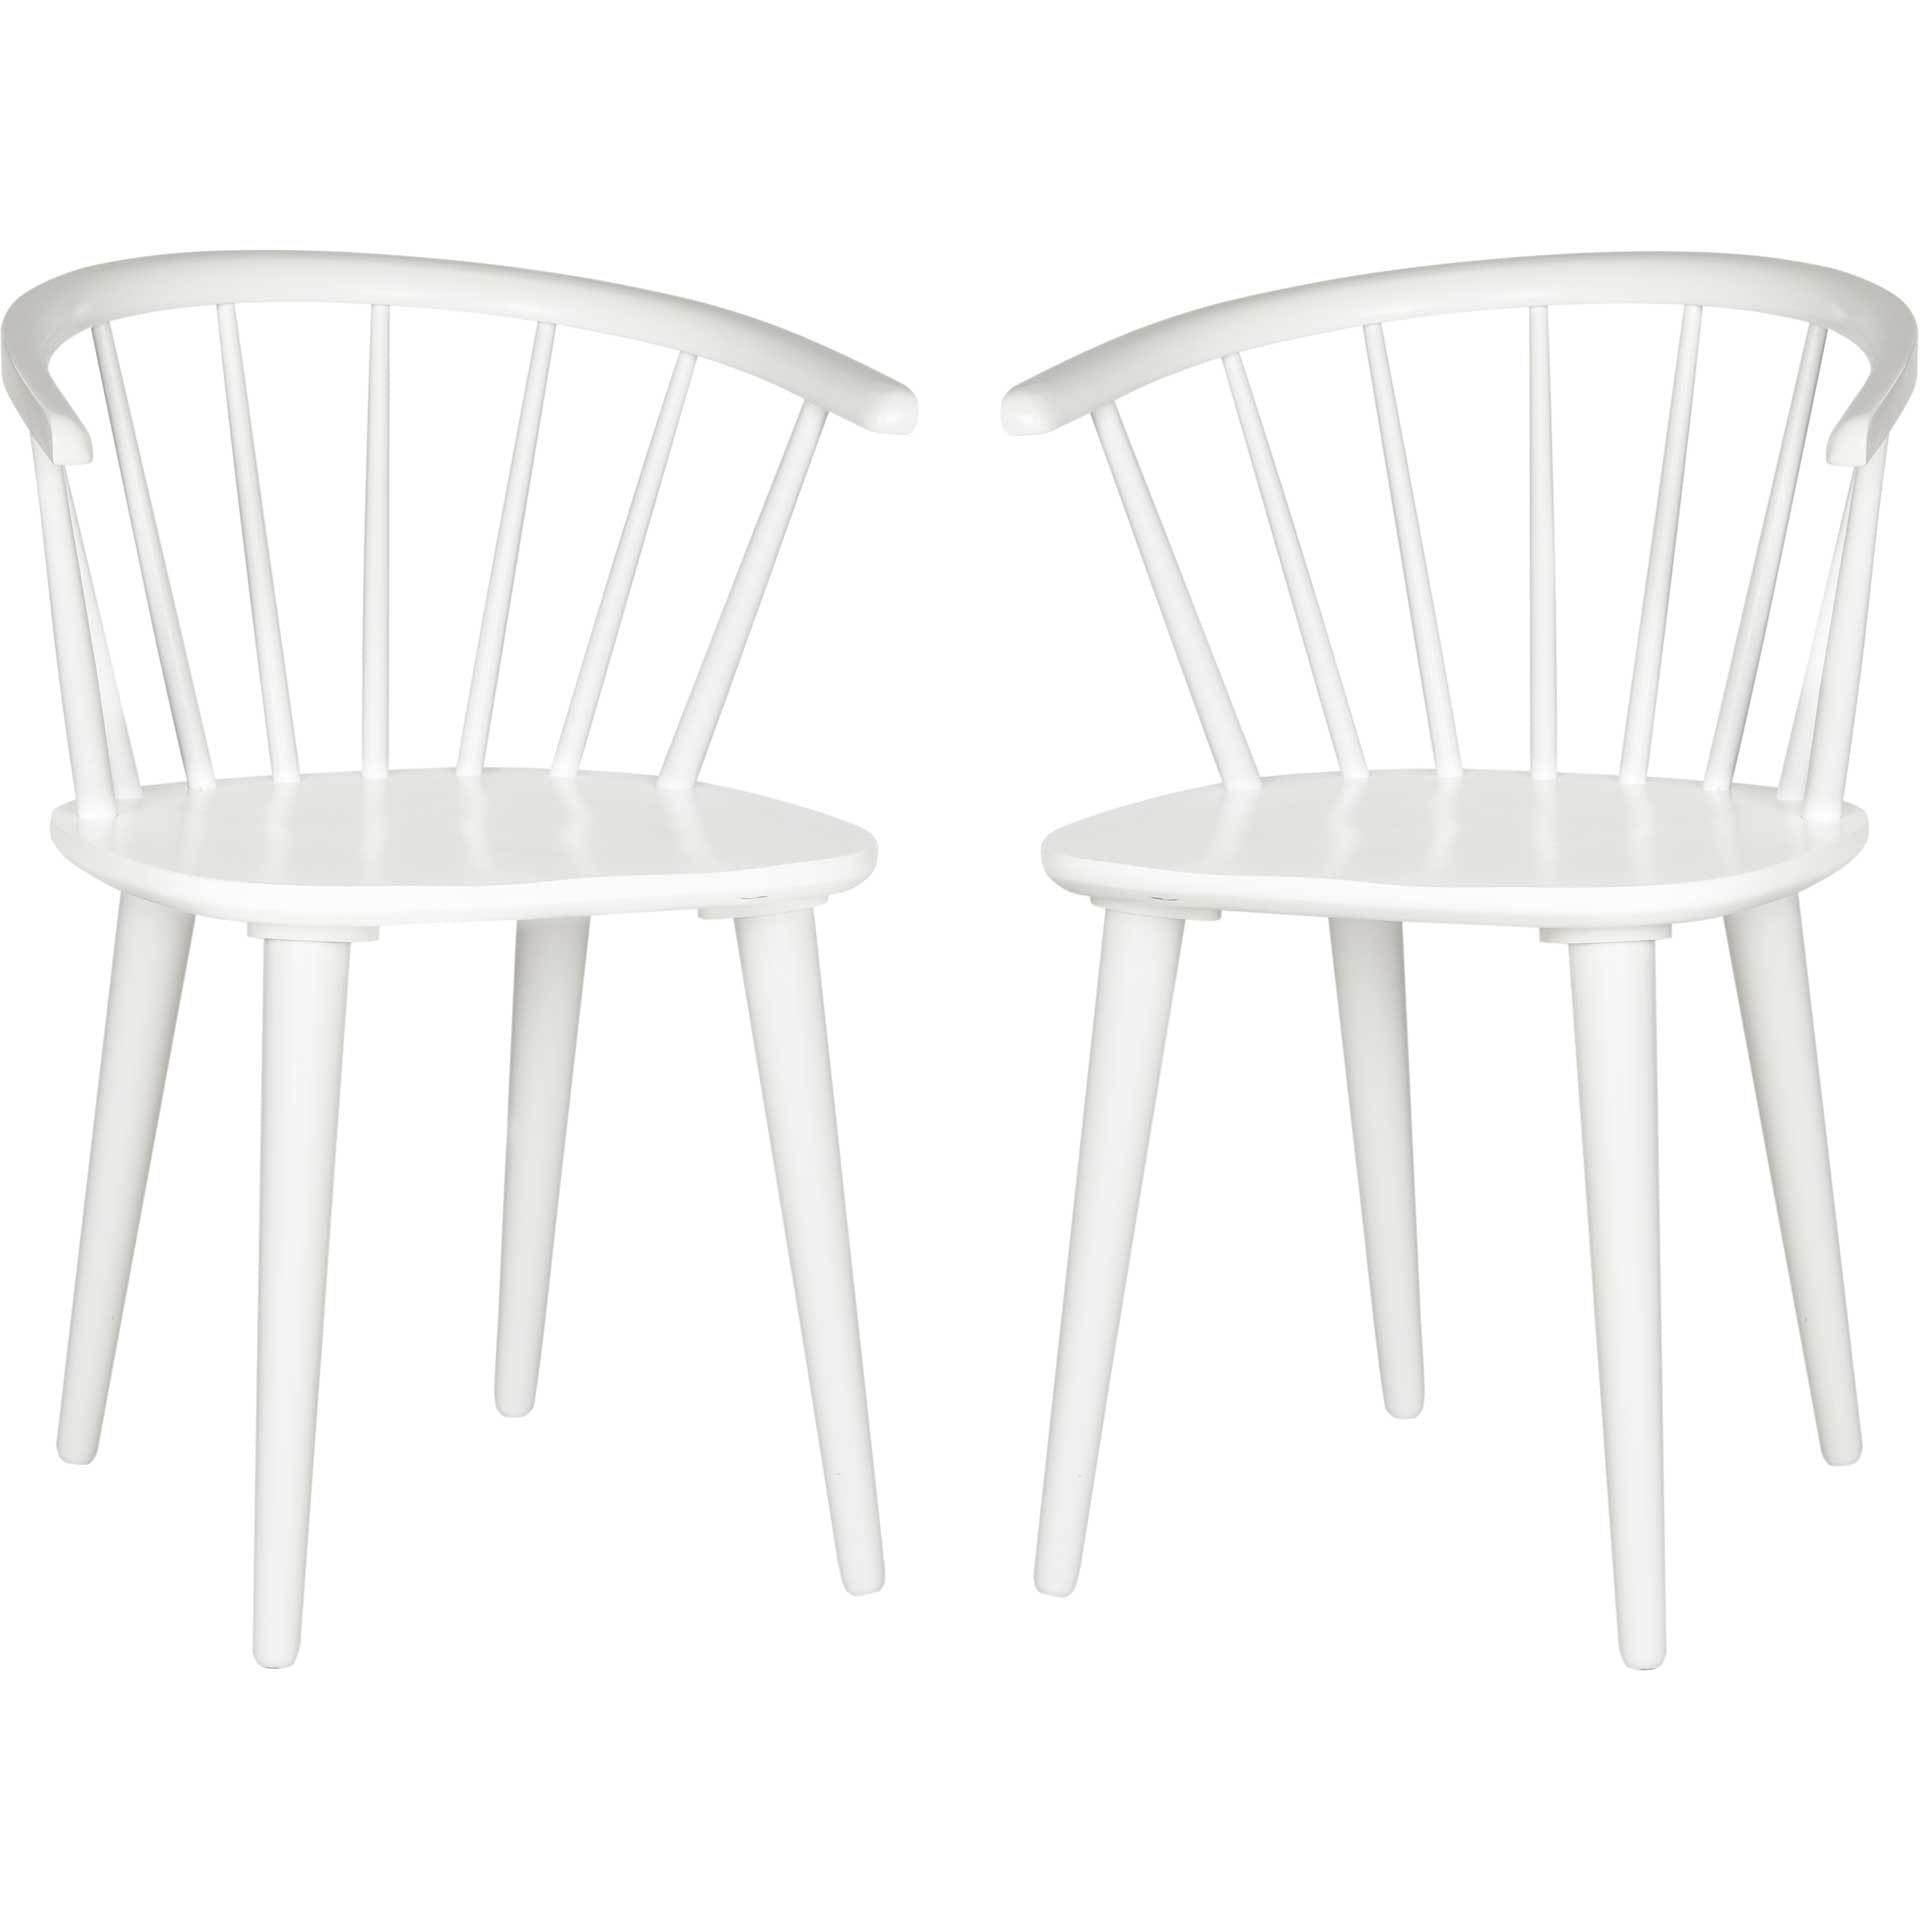 Blair Curved Spindle Side Chair White (Set of 2)